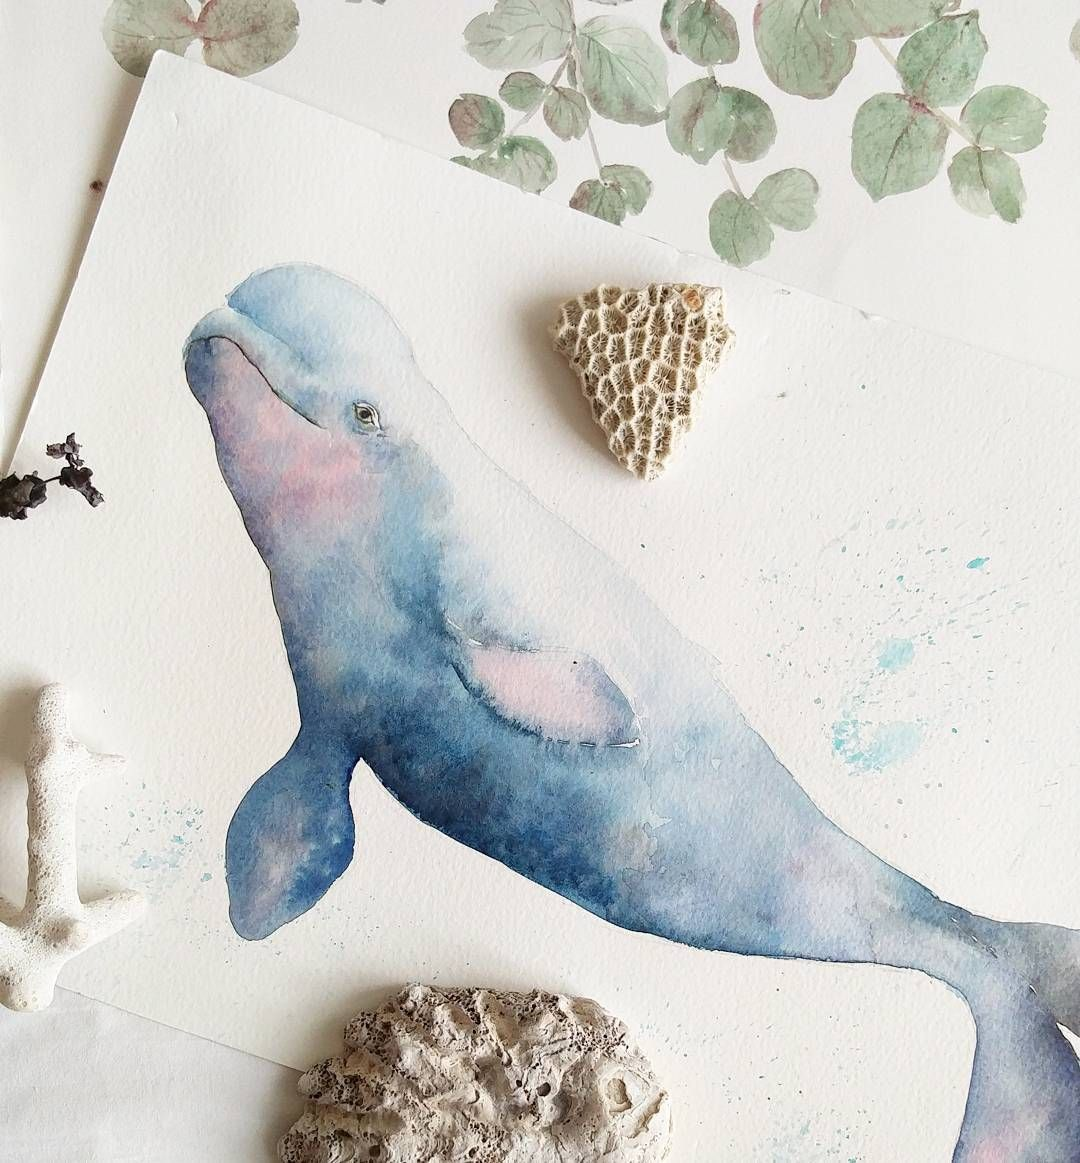 e7b2b23674f My Happy Beluga whale is up on my online shop www.estherpeck.storenvy.com.  If you want to learn this cutie